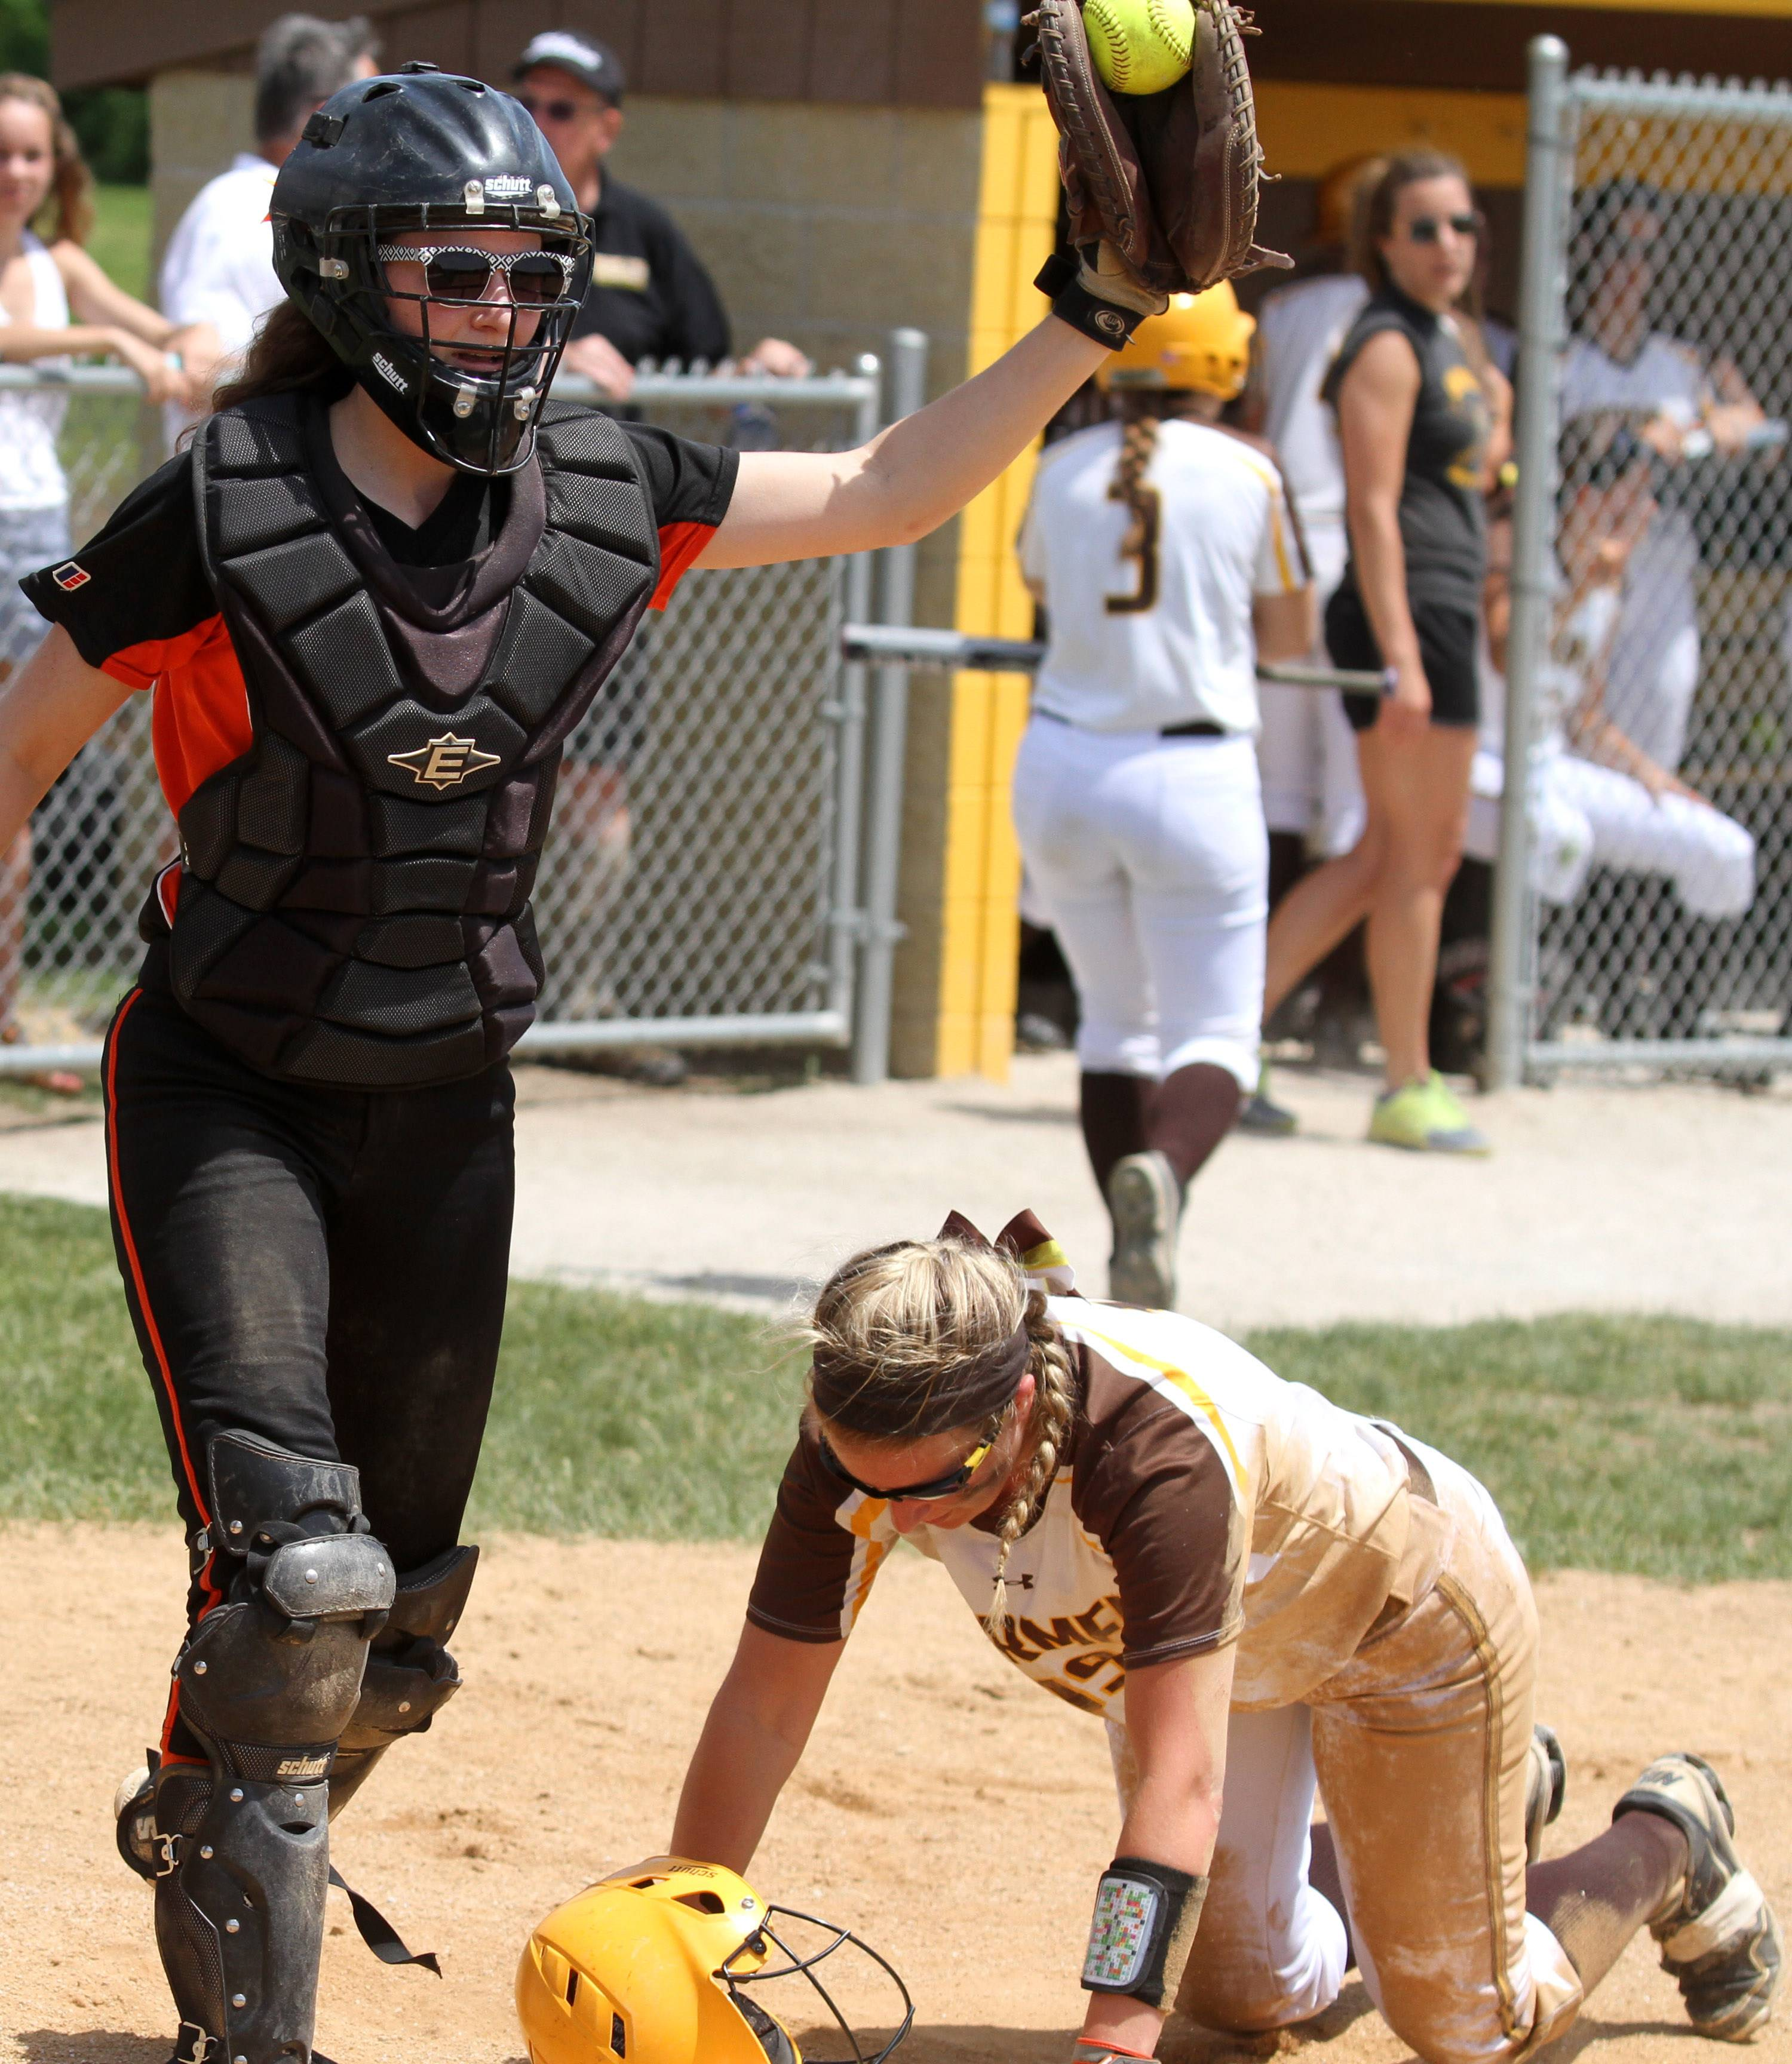 Libertyville catcher Andi Katz shows she has the ball after tagging out Carmel's Amy Abel at home plate in Class 4A regional final action Saturday in Mundelein.